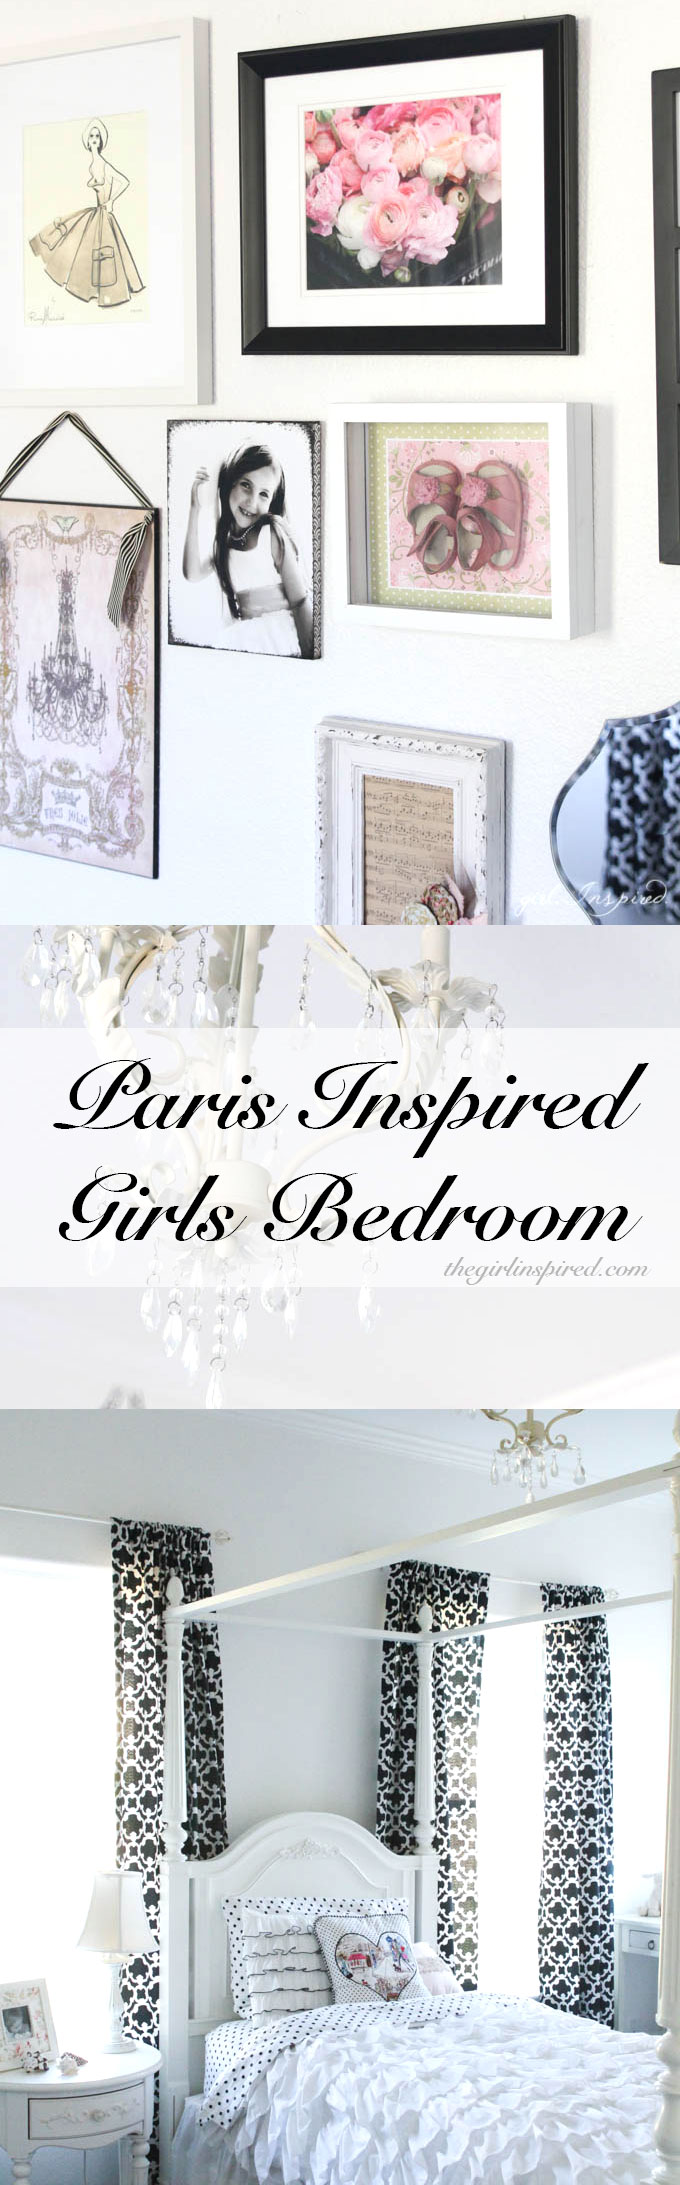 Paris Inspired Bedroom - pretty girl's bedroom!